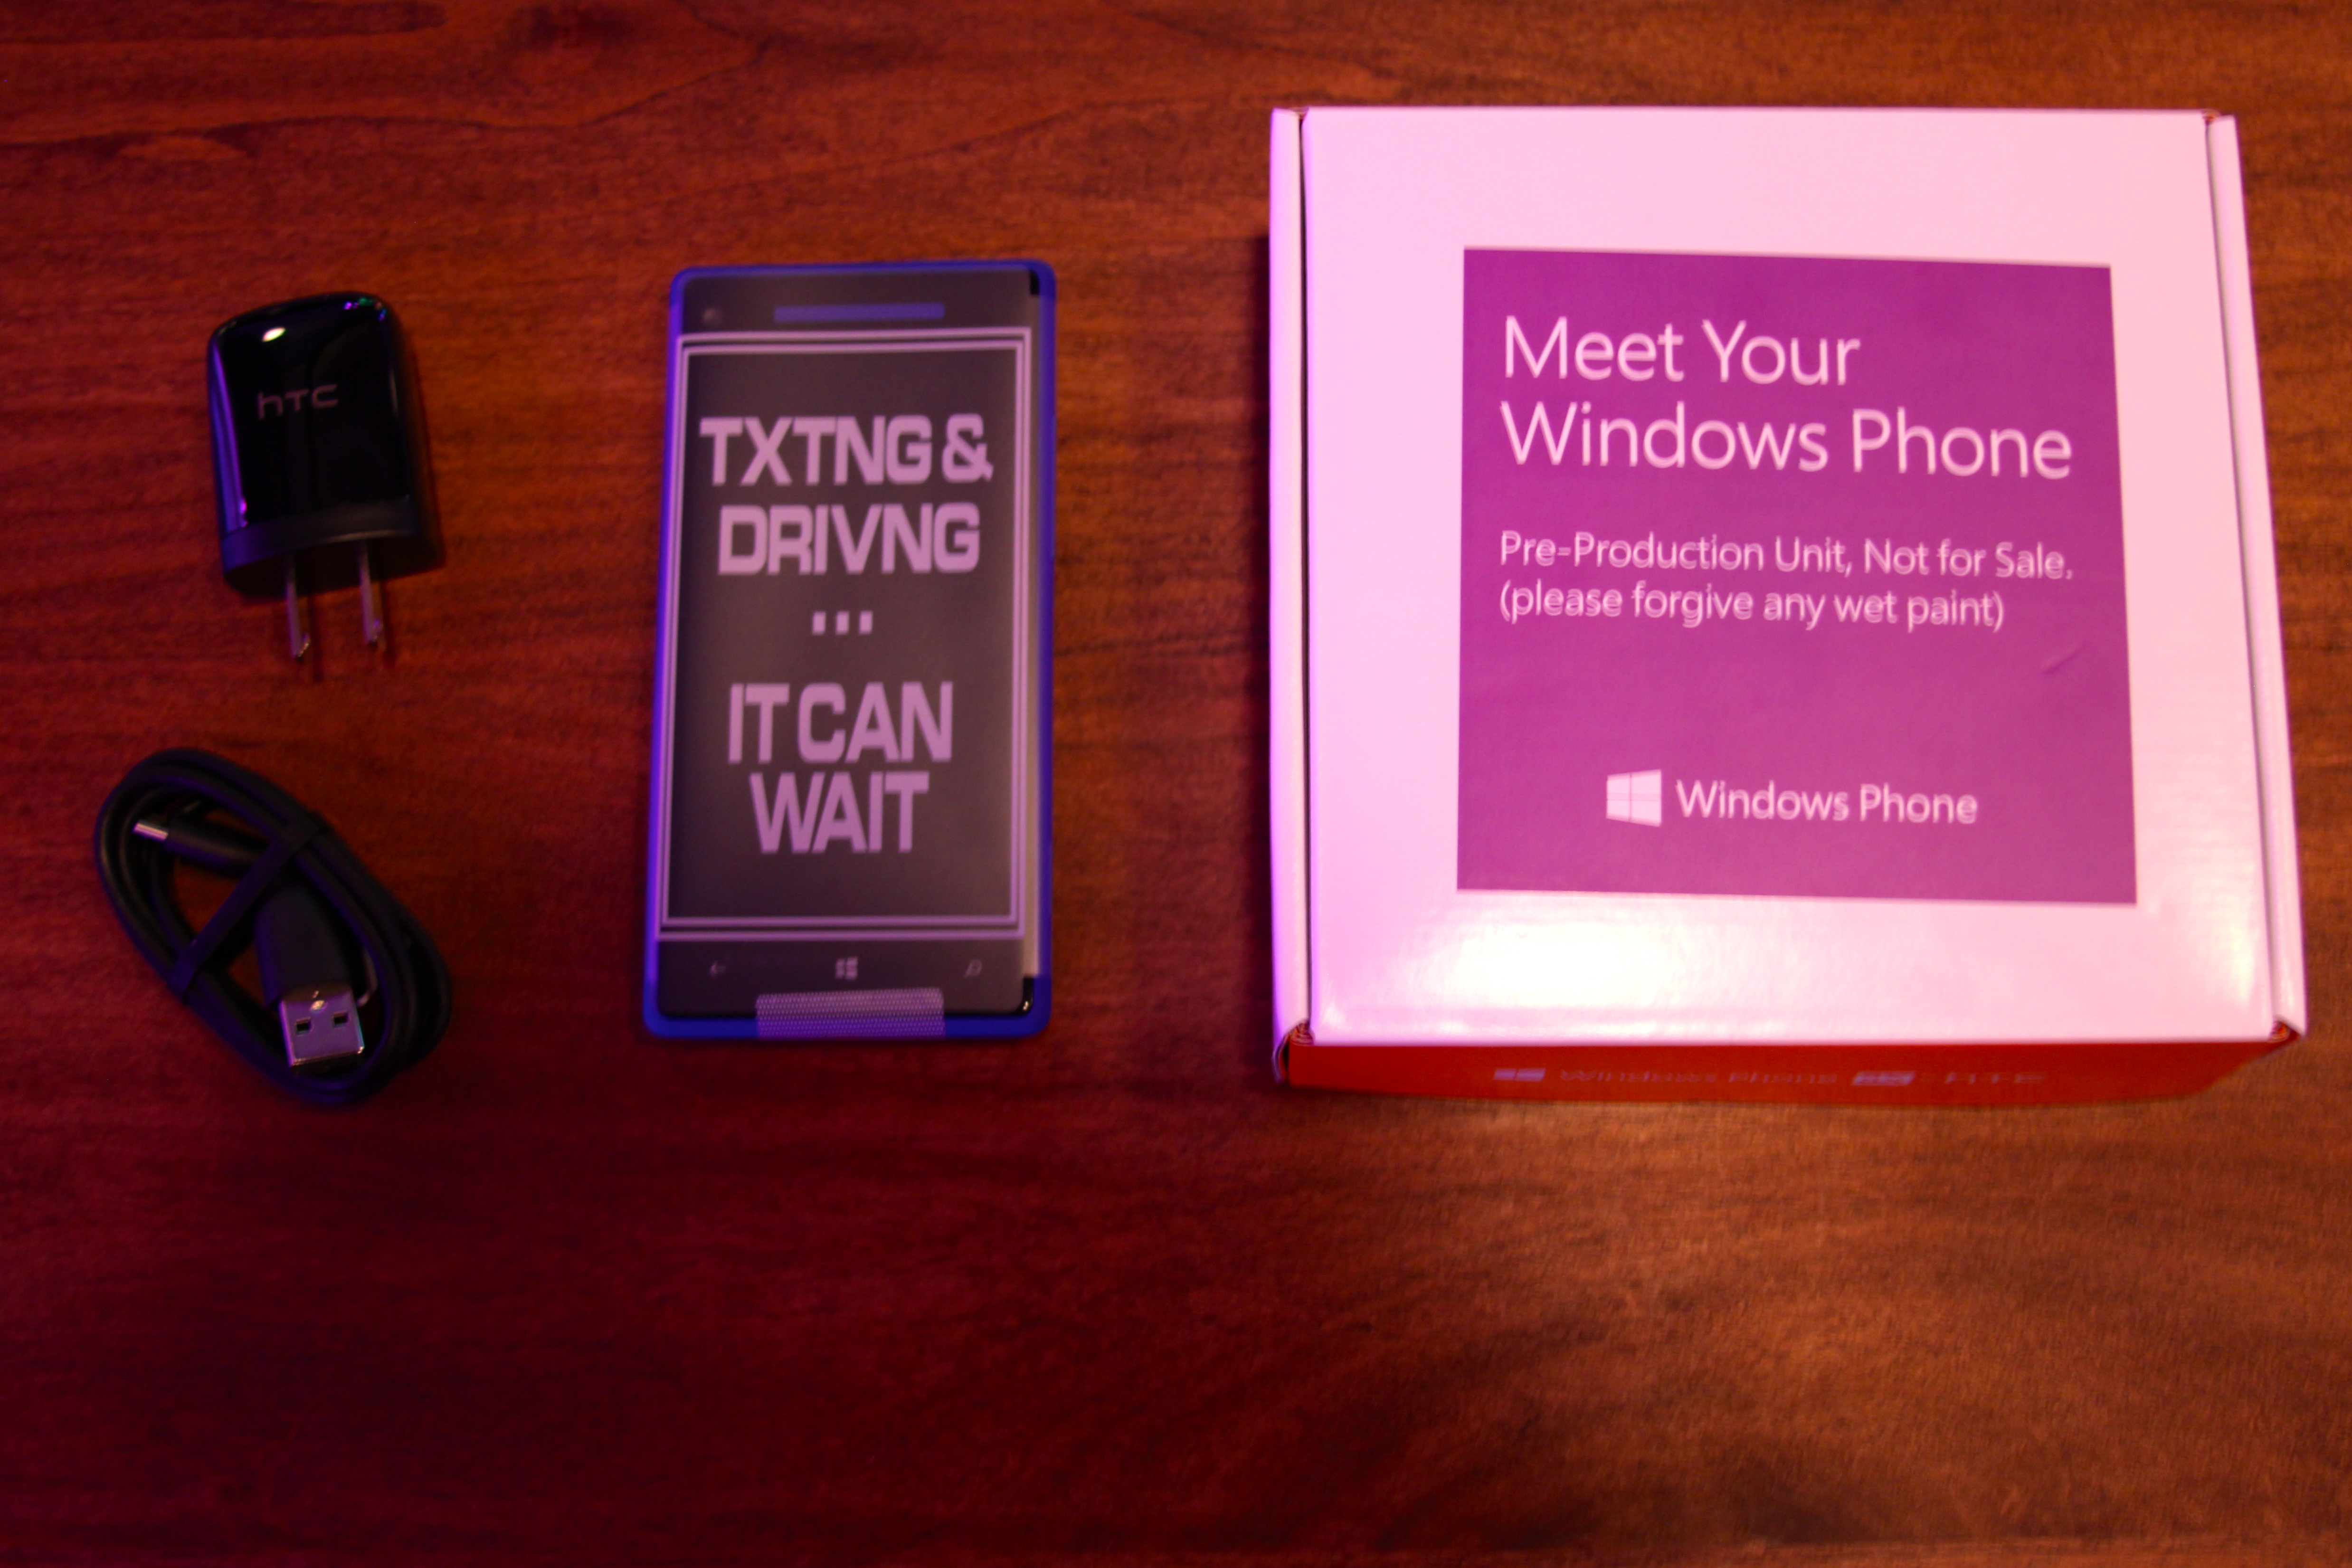 The HTC Windows Phone 8X alongside its box. Don't text and drive.